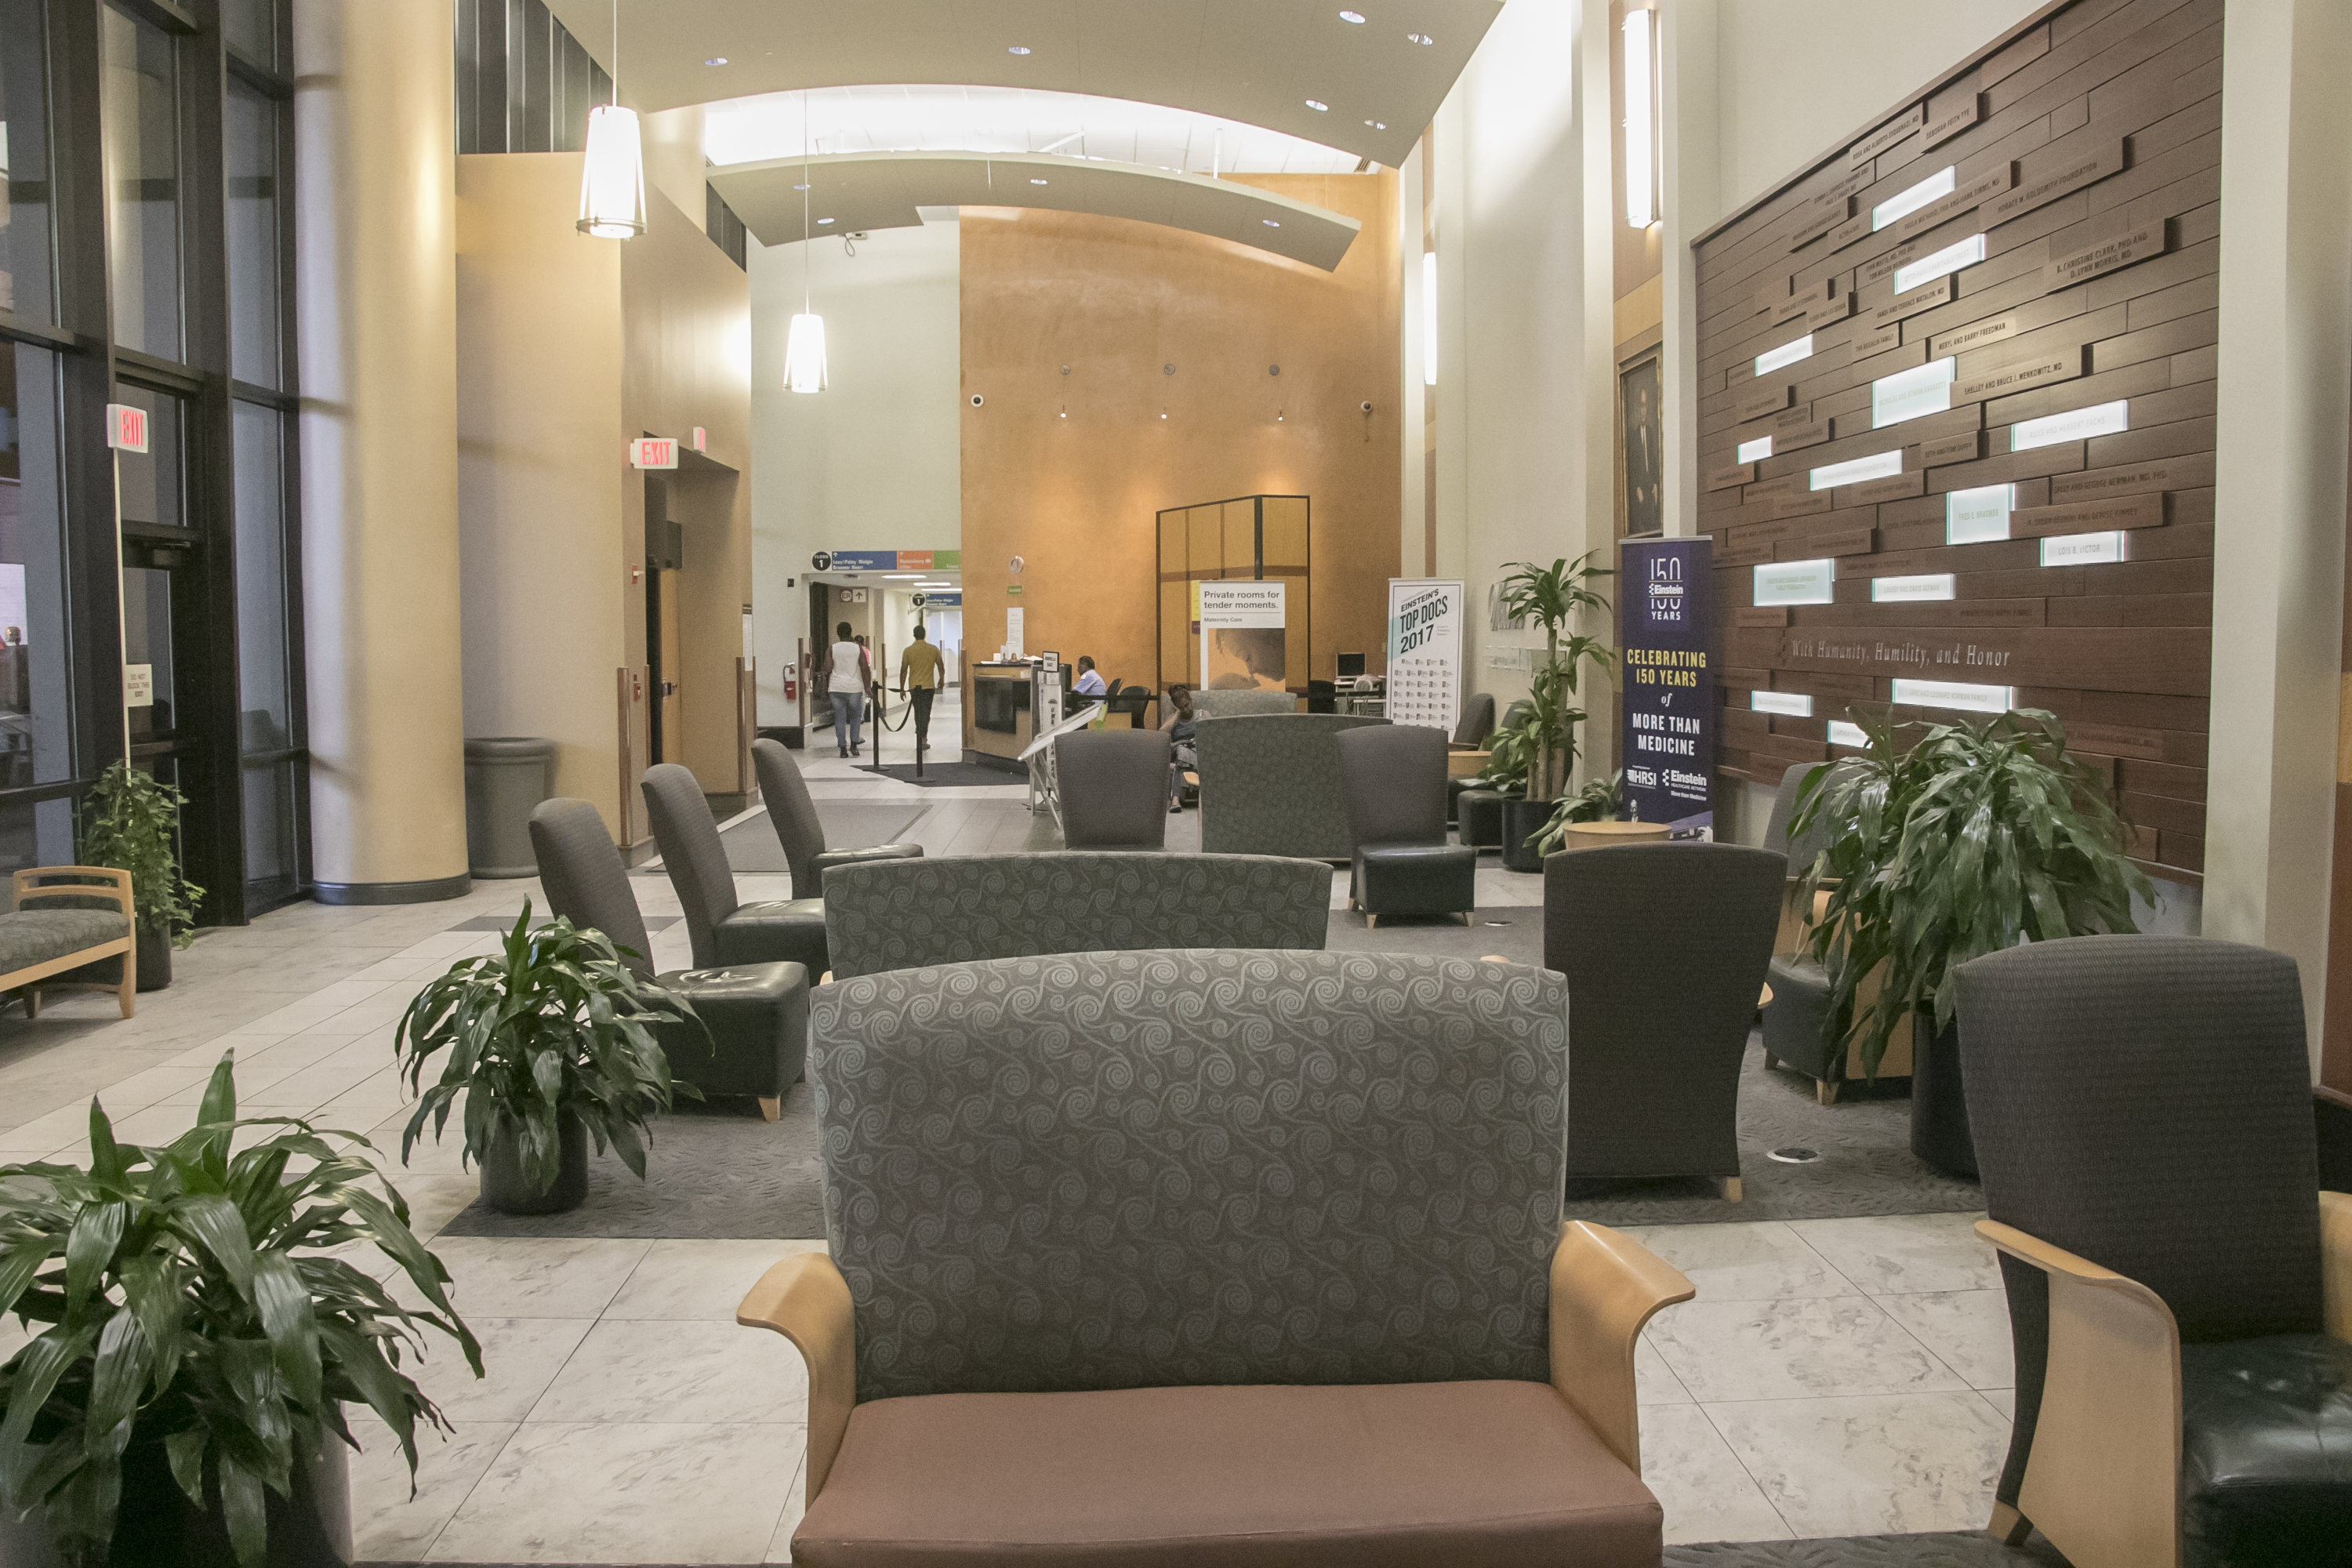 image of Tower Building lobby